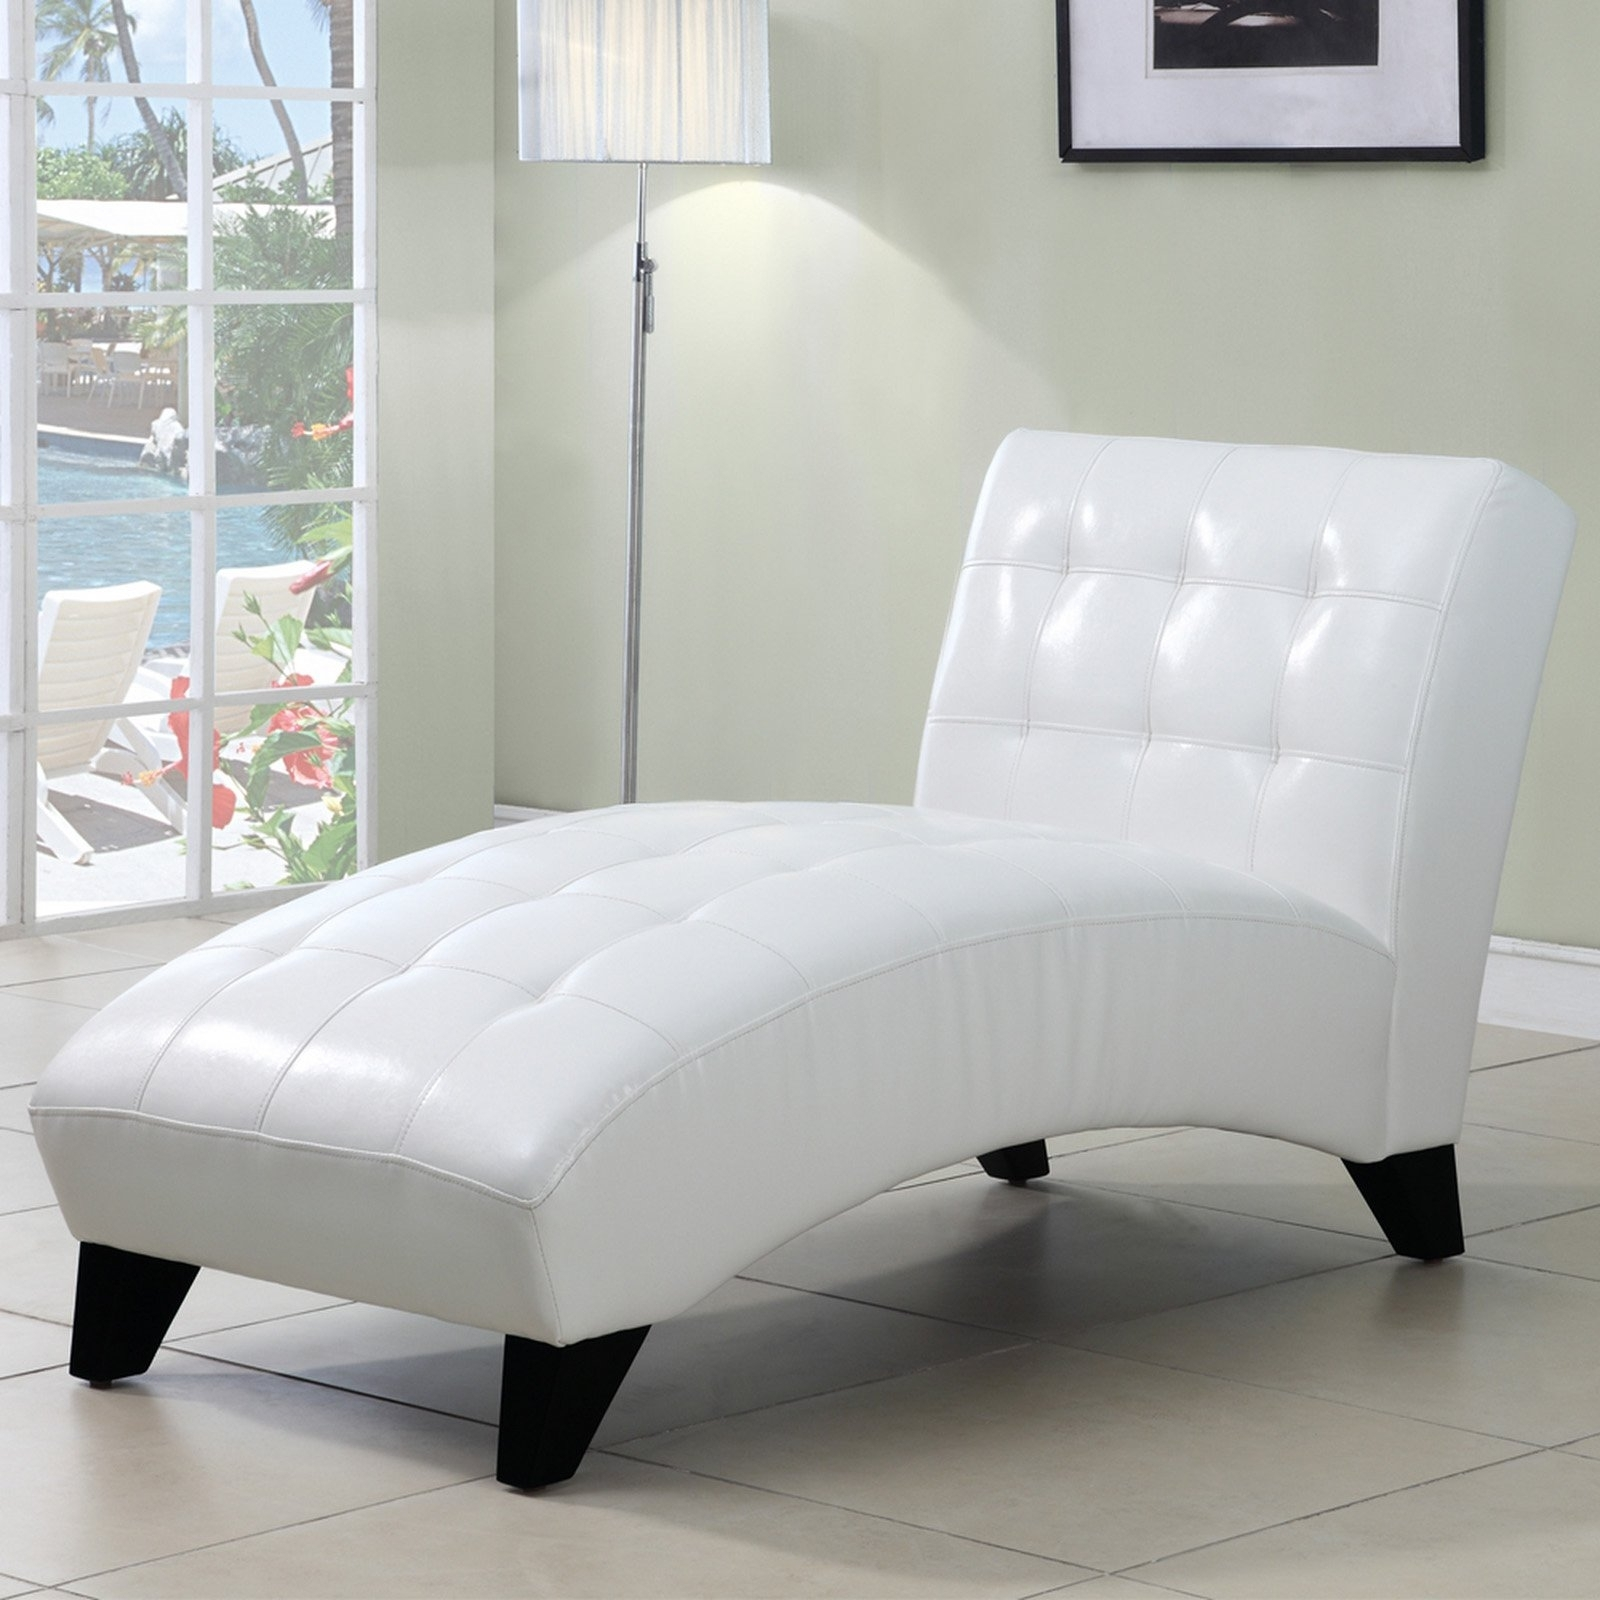 White Leather Chaise Lounges Intended For Preferred Bedroom (View 3 of 15)